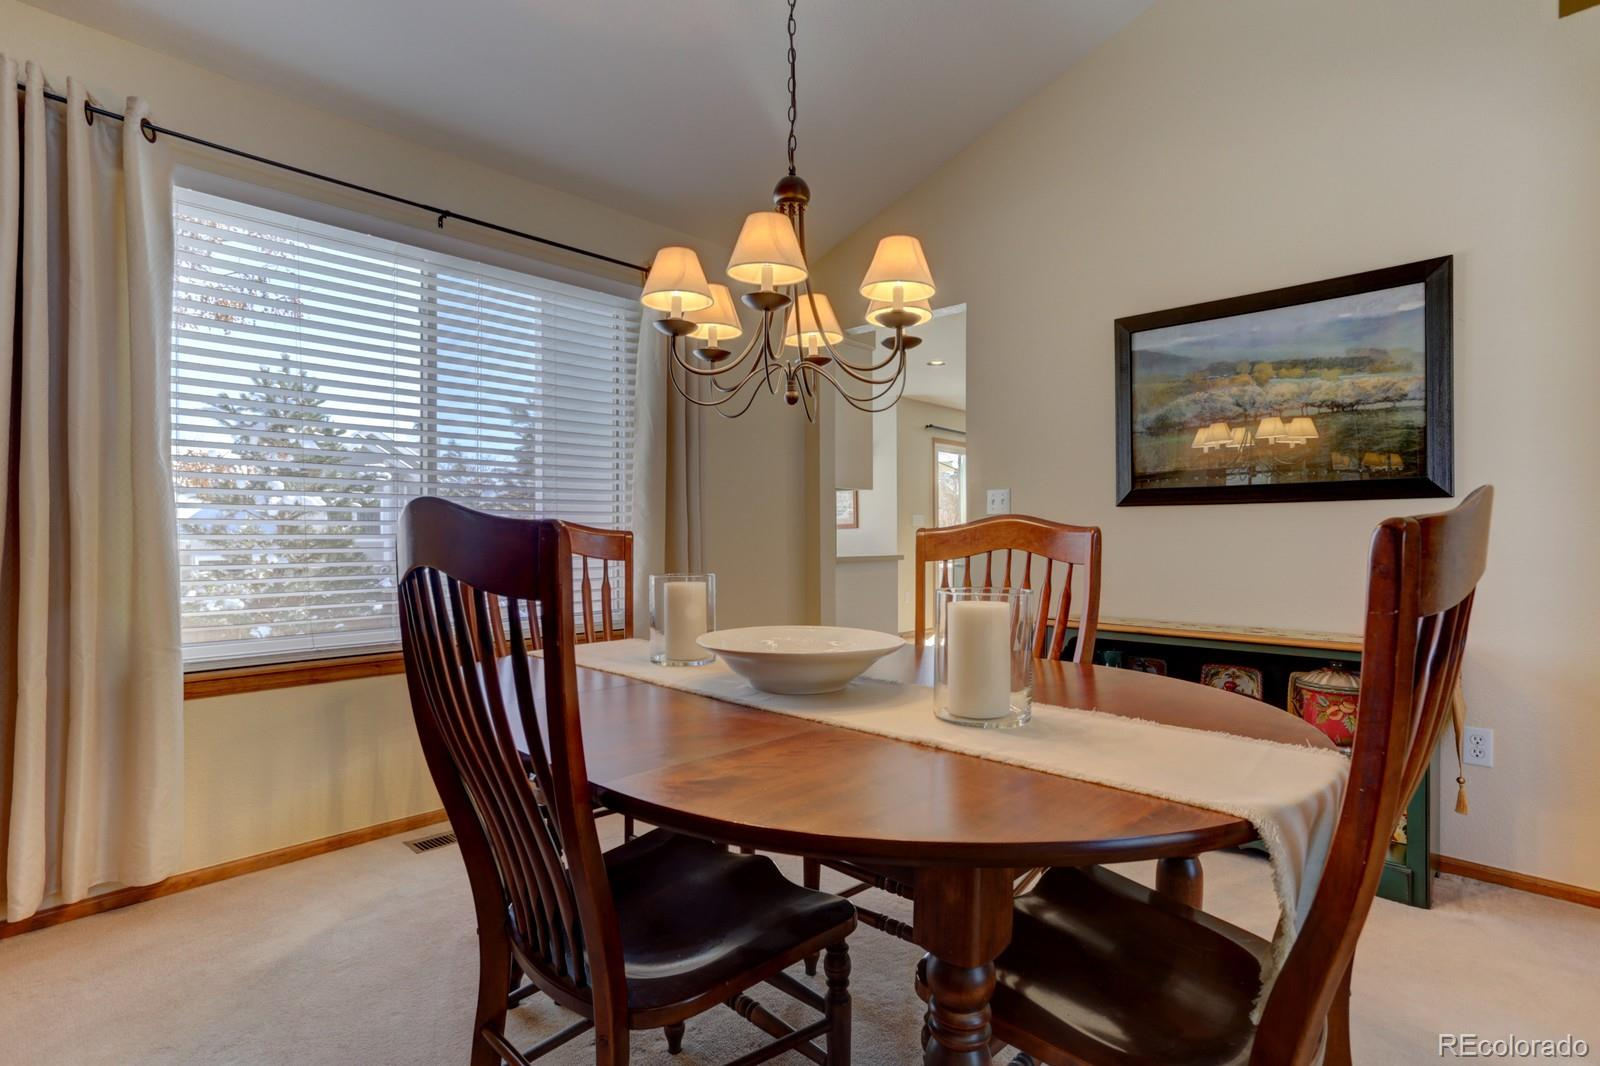 MLS# 5985159 - 8 - 9991 Spring Hill Place, Highlands Ranch, CO 80129